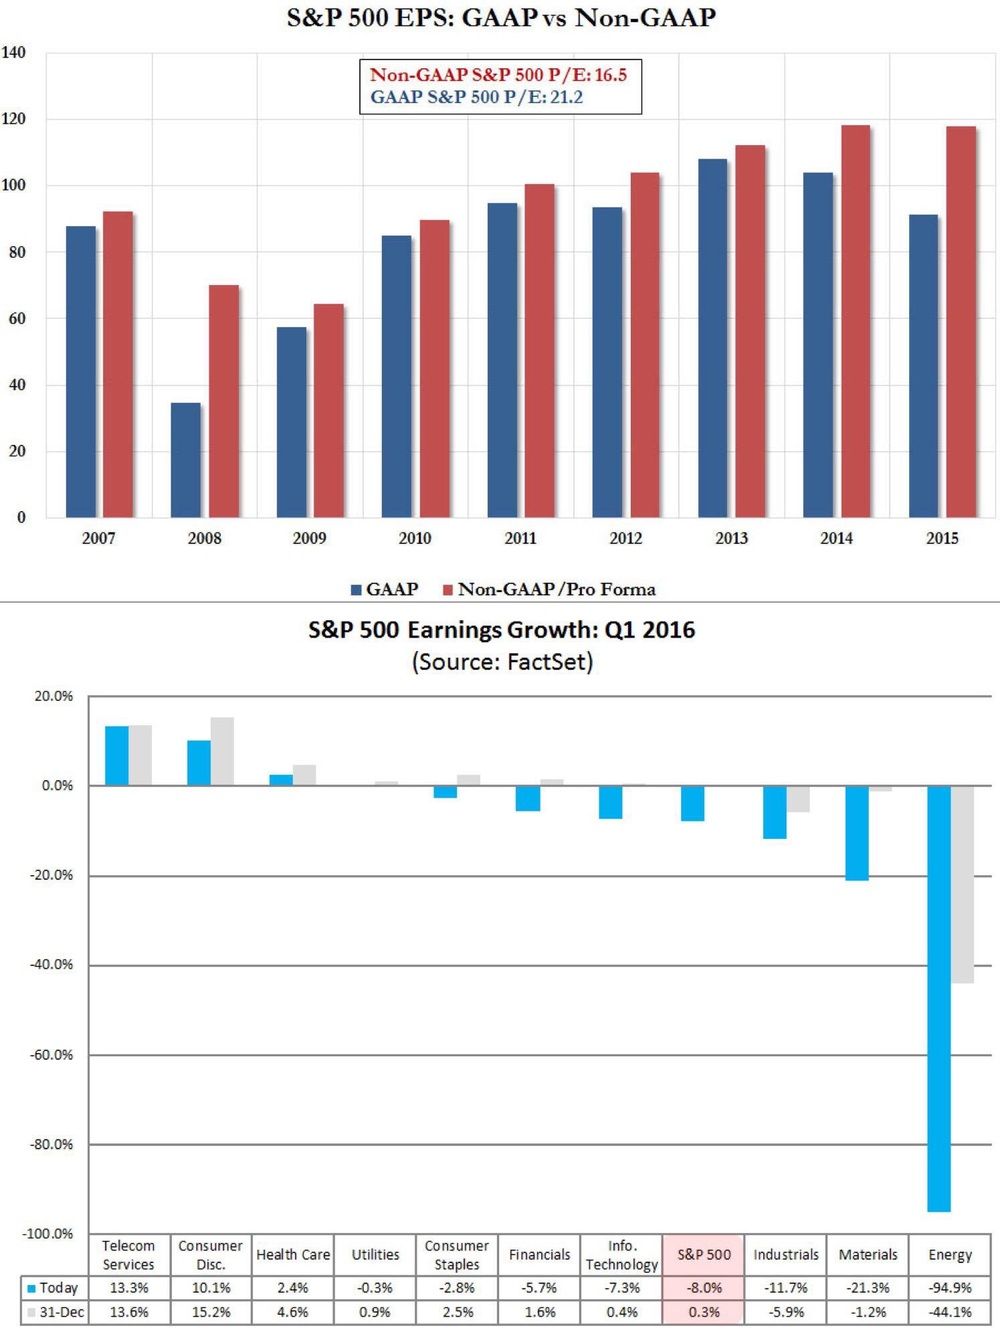 """Is the U.S. in an earnings recession? We think so. Looking at GAAP earnings (the less shady accounting standard), S&P 500 EPS is expected to contract 8% in 1Q16 (YoY). That's a BIG contraction.    How bad are the downward revisions? Very. At the end of 2015, EPS was only expected to grow by 0.3% in 1Q16. Fast forward 2 months, this forecast is now -8%.    Also, the discrepancy between GAAP and non-GAPP earnings are huge! In fact, if we juxtapose both shades of P/E (of the S&P 500), the gap (pardon the pun) between GAAP and non-GAAP is the widest since the Great Recession and Financial Crisis on 2008.    And it's not just limited to energy. Materials, industrials and the entire market is expected to see declines in profitability. With oil prices heading higher now, one can only imagine what havoc this will wreck on corporates.    One last anecdote. JPM published a piece on Friday writing that in 80% of the observations across over 5 decades, a recession followed 2 consecutive quarters of earnings contraction. If indeed S&P 500 1Q16 earnings contracts (whatever the figure may be), then that marks the 4th consecutive quarter of declining EPS. This isn't an earnings recession, it's a depression!""   Business Of Finance on Facebook, 7 March 2016"